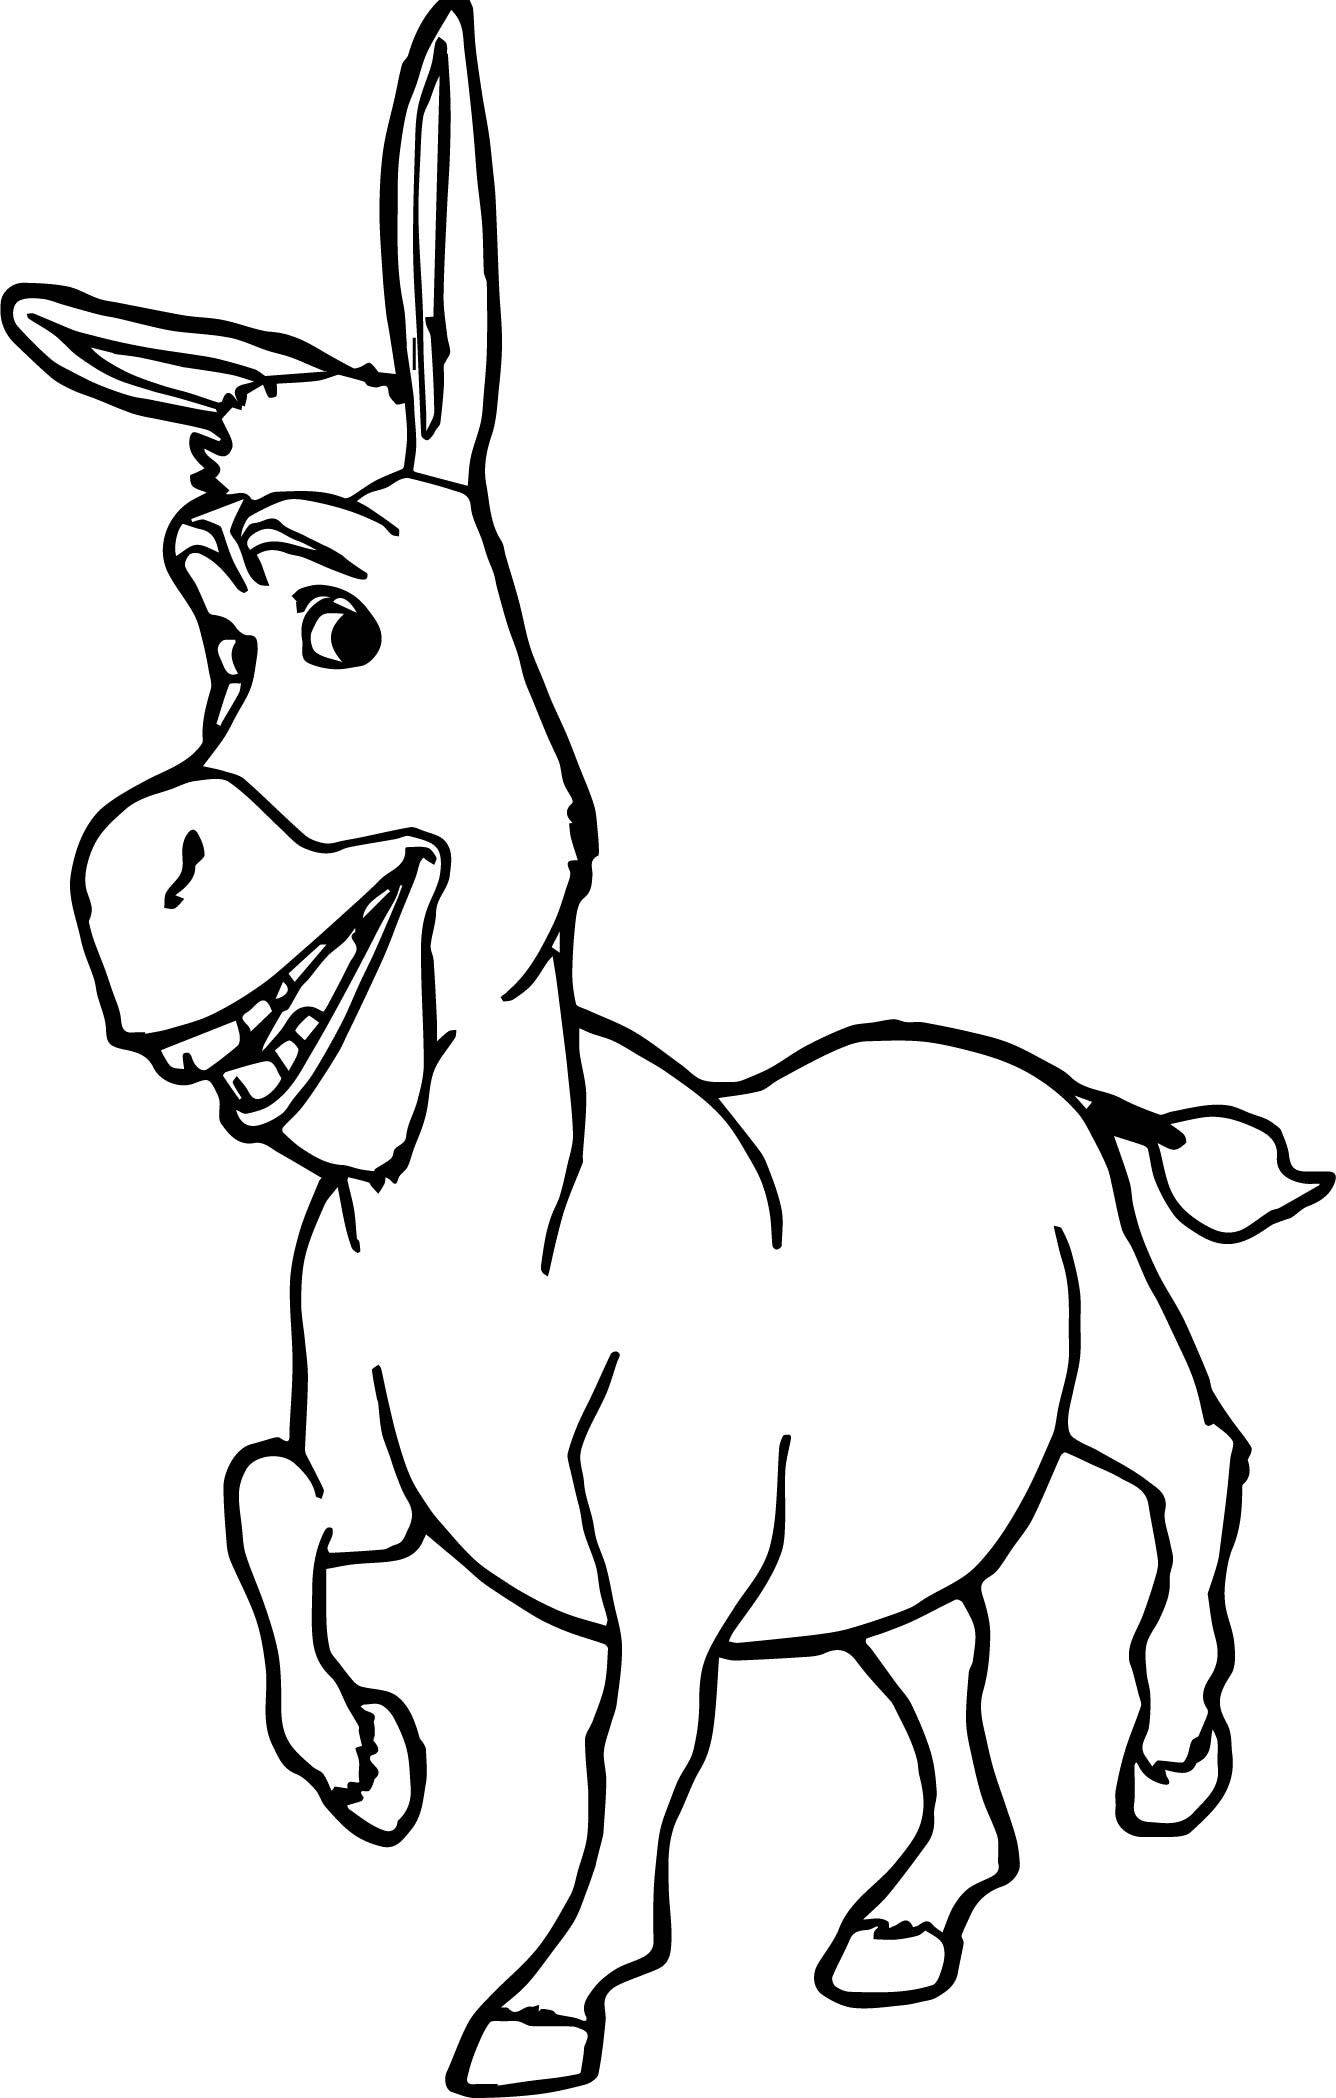 Shrek And Donkey Coloring Pages Printable